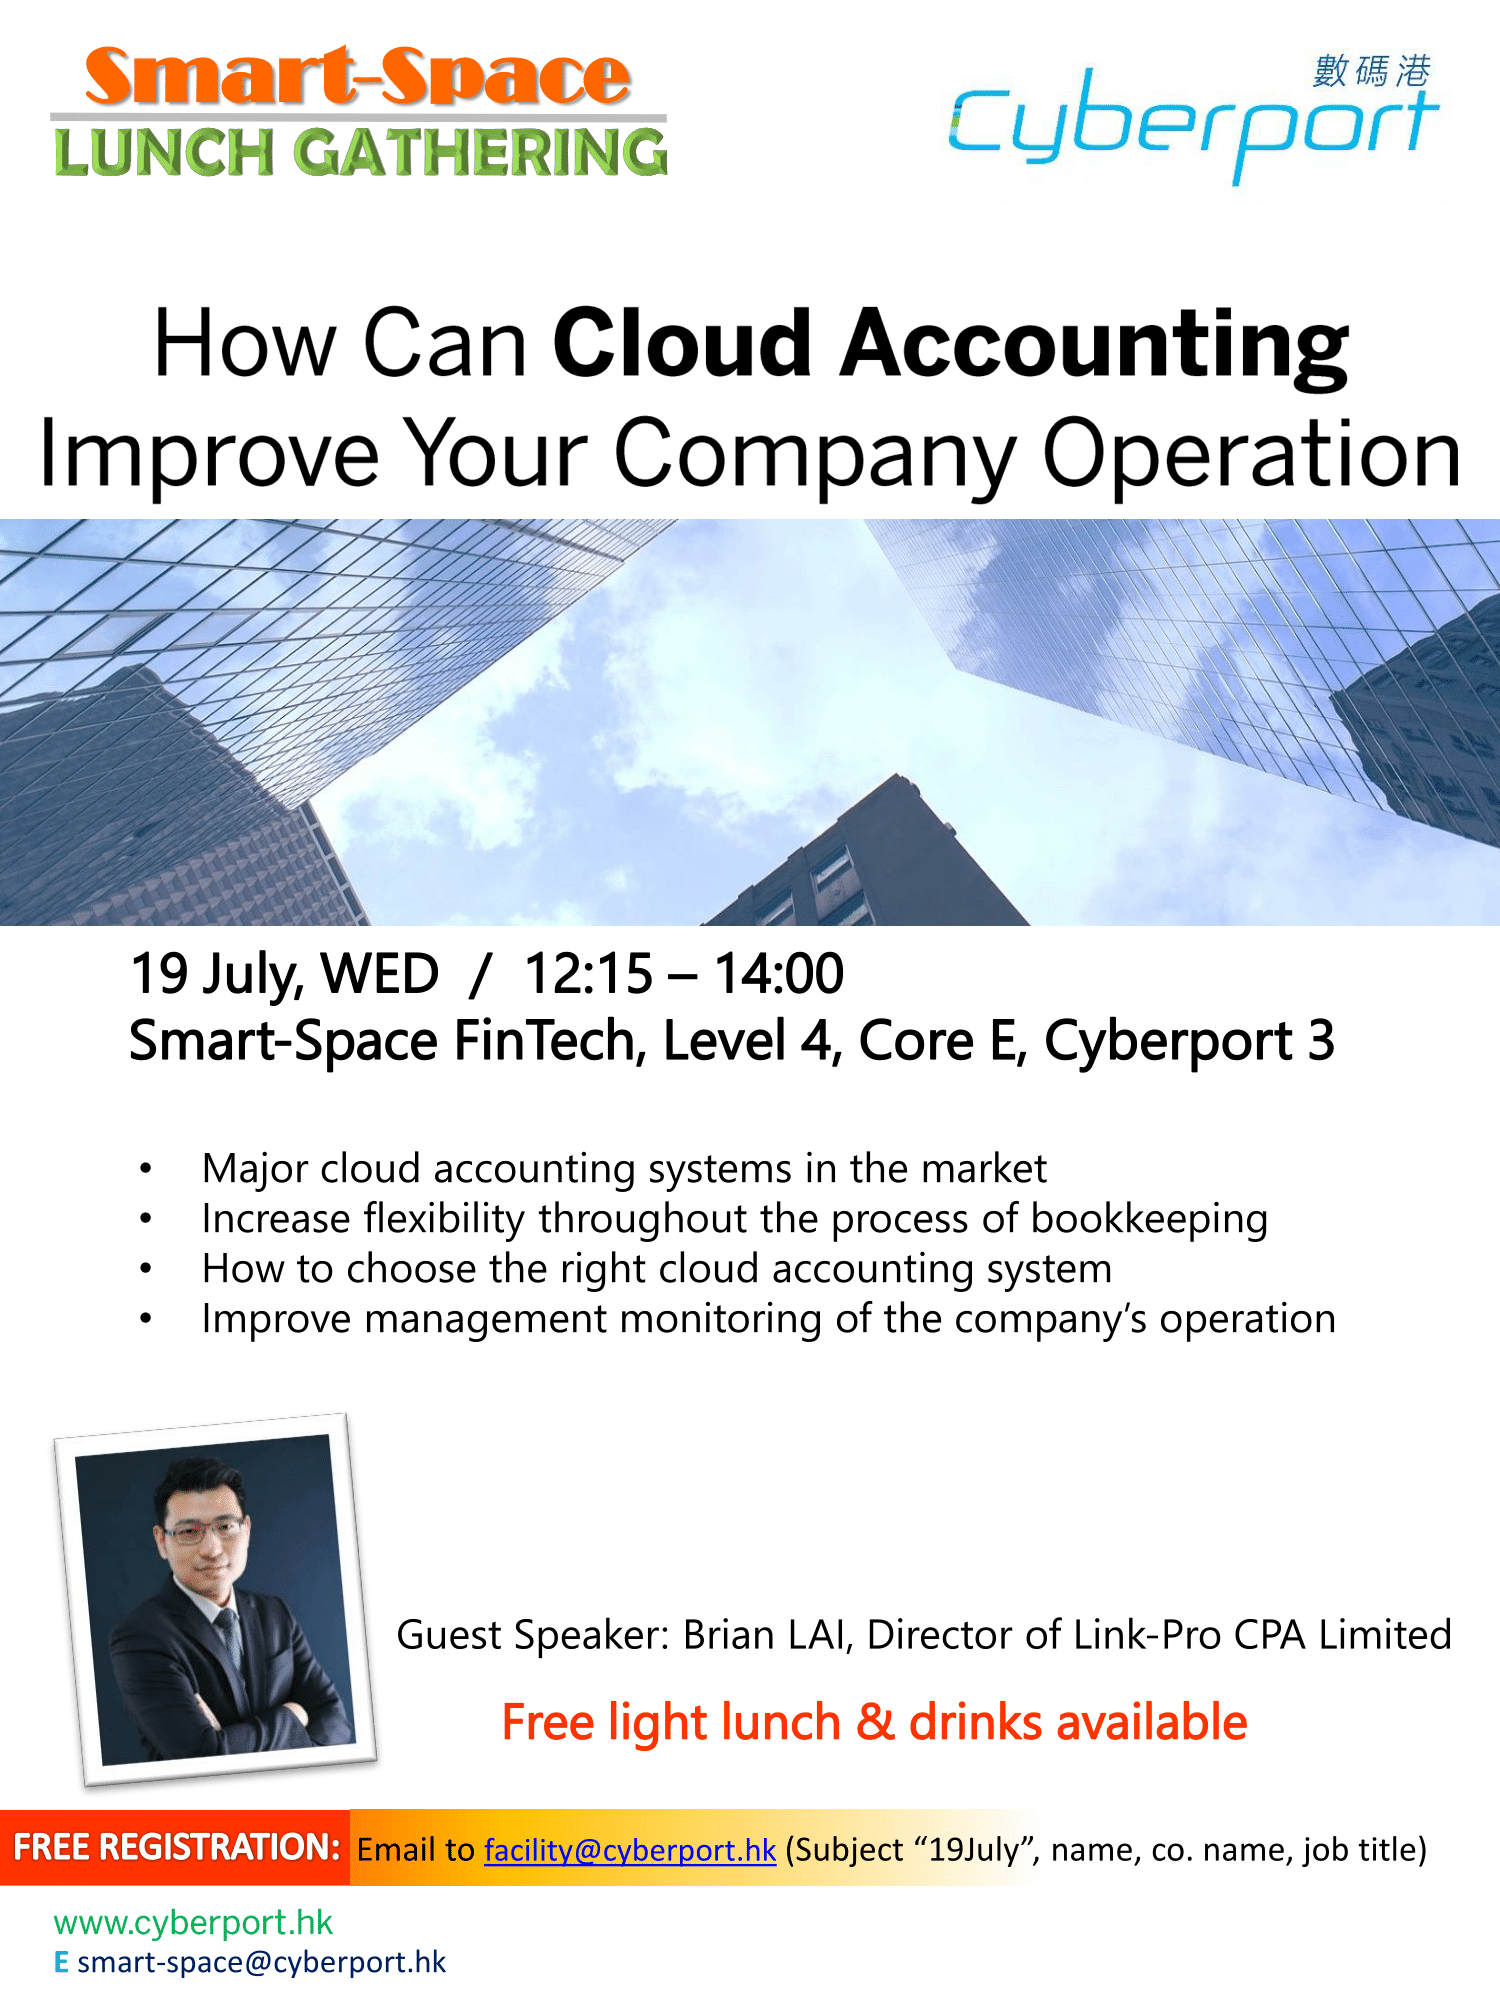 Smart-Space Lunch Gathering: How Can Cloud Accounting Improve Your Company Operation